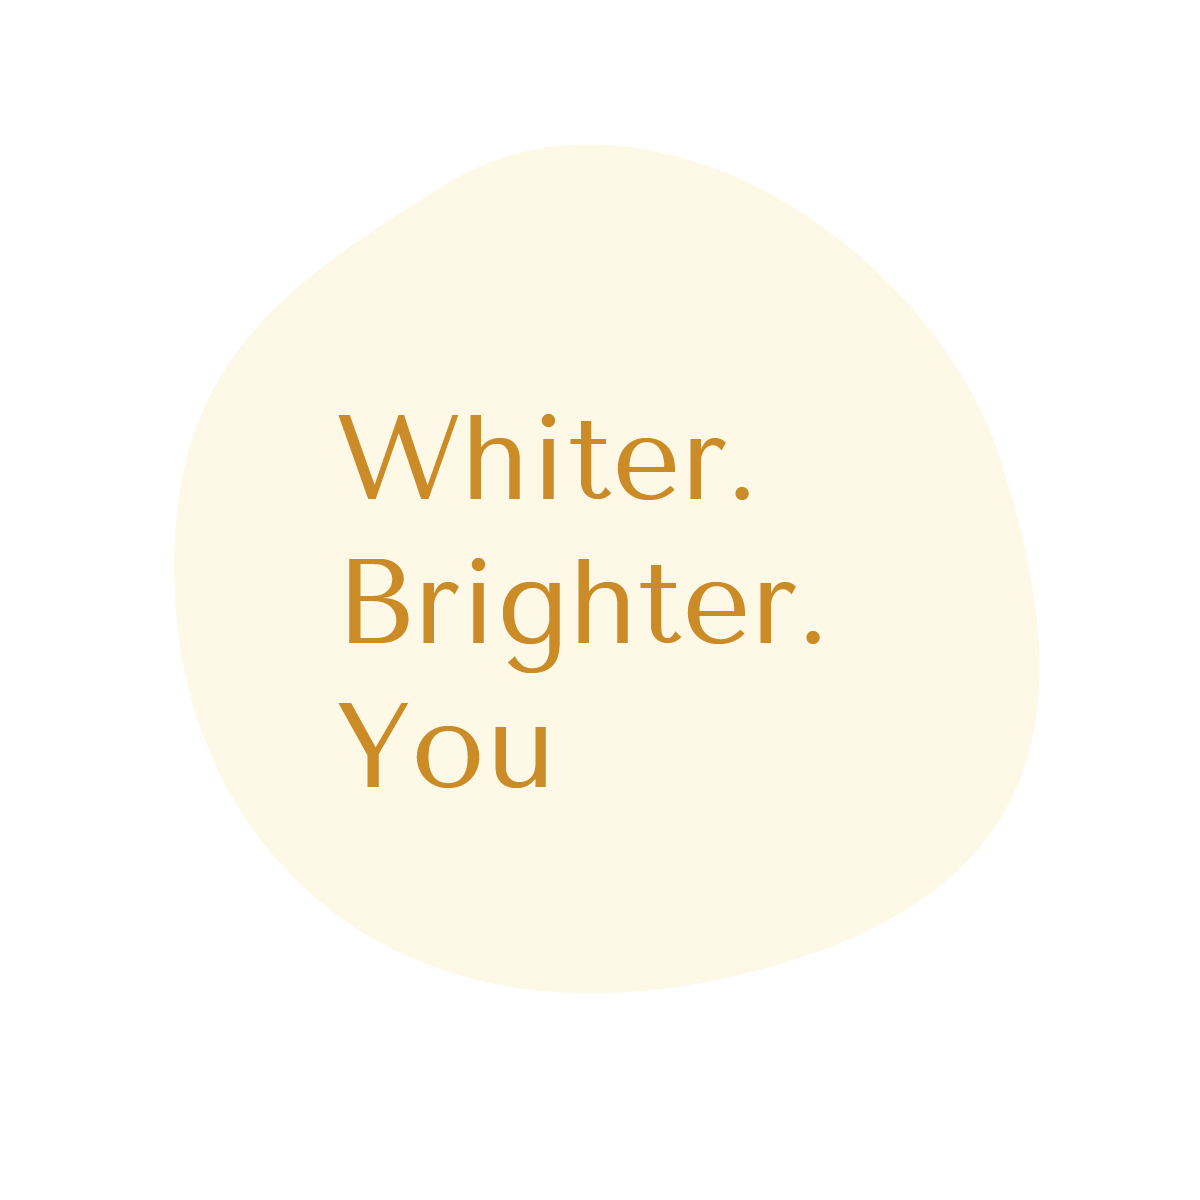 surry hills dental whitening quote